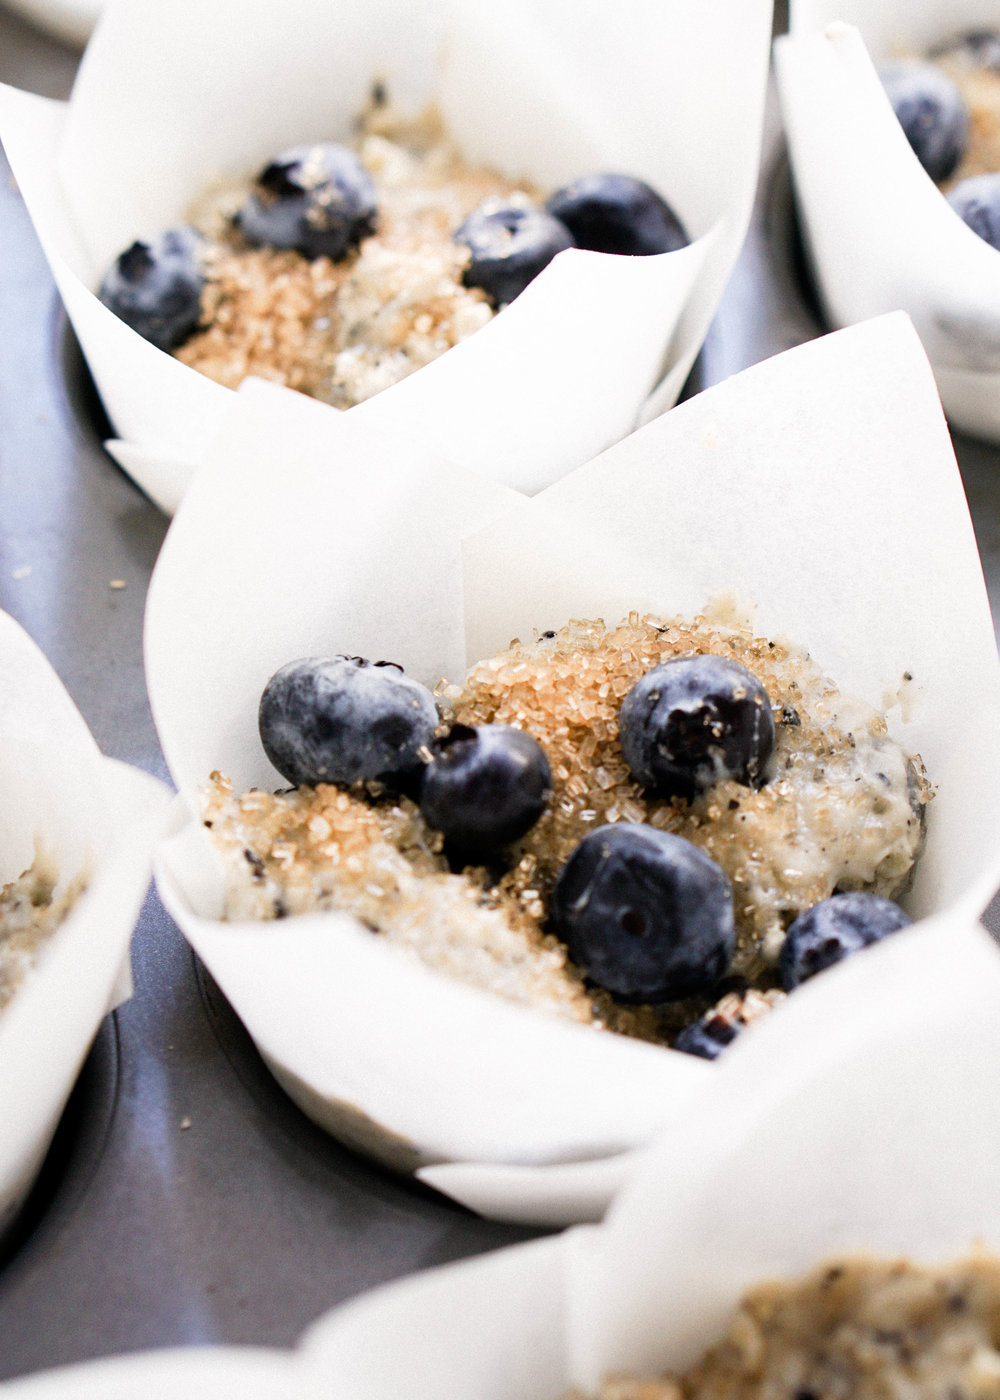 Black Sesame Blueberry Muffins - Eat Cho Food